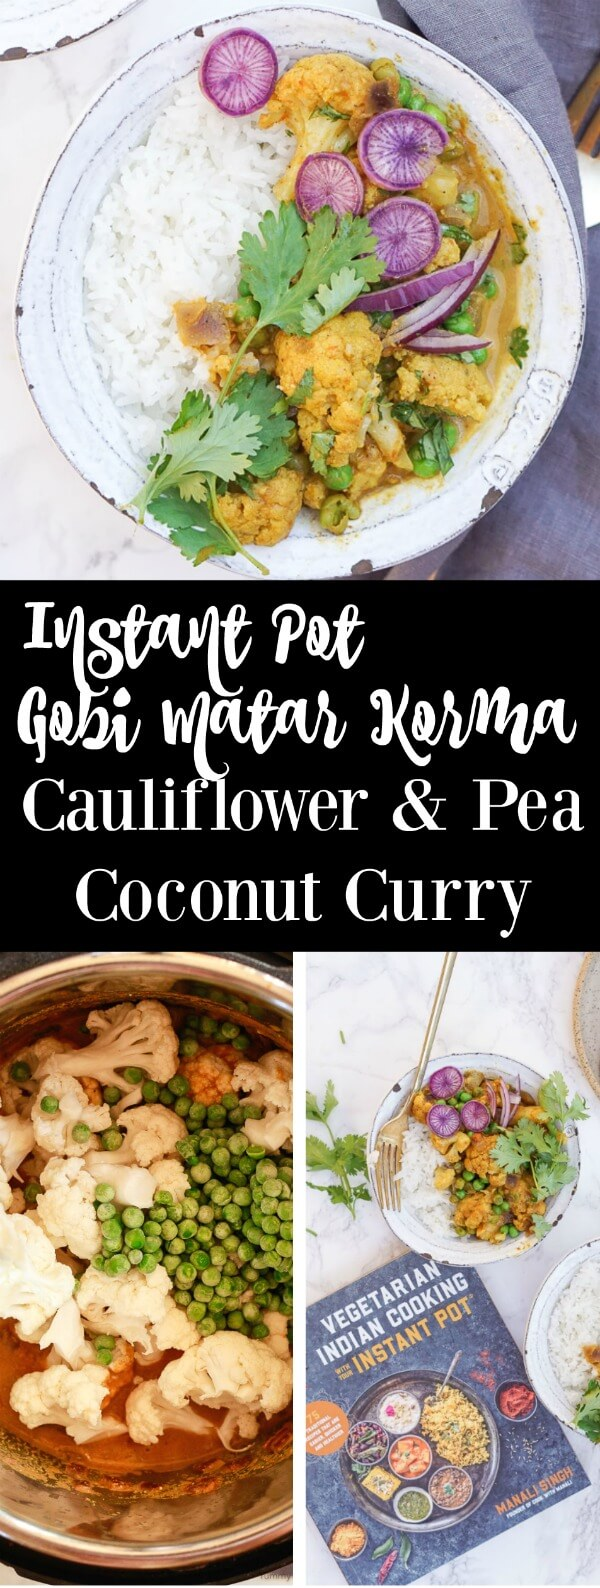 Delicious and easy Instant Pot Gobi Matar Korma, or Cauliflower and Pea Coconut Curry. This easy Indian curry is vegetarian, vegan, and gluten-free friendly! It makes a wonderful plant based Instant Pot dinner.